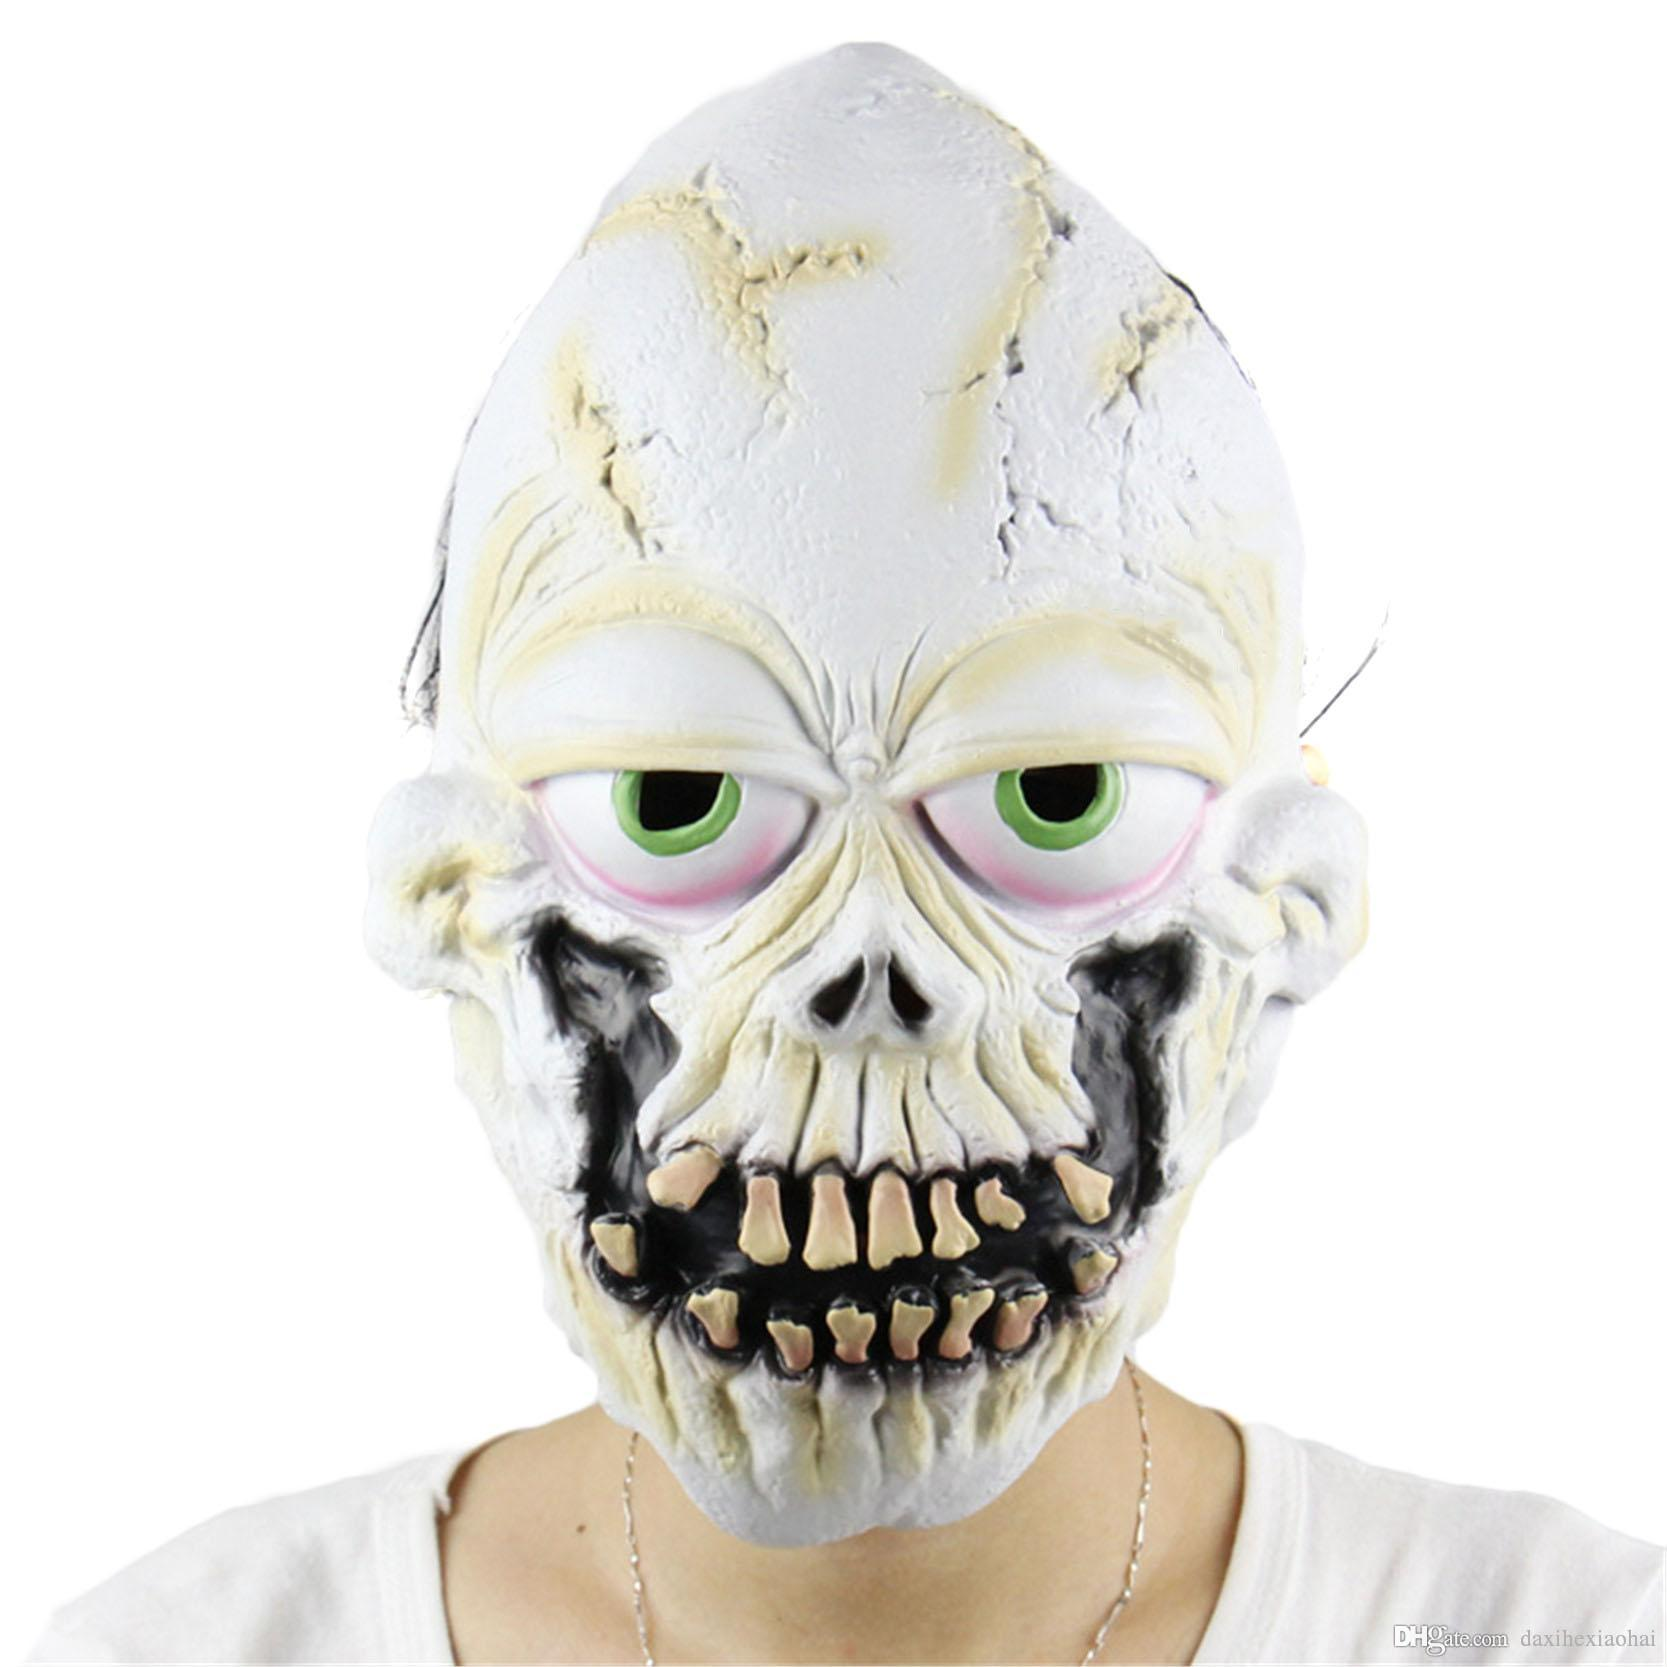 new fun buck teeth skull scary mask clown latex masks cosplay costume for party halloween foolu0027s day masquerade masks halloween costumes masquerade masks